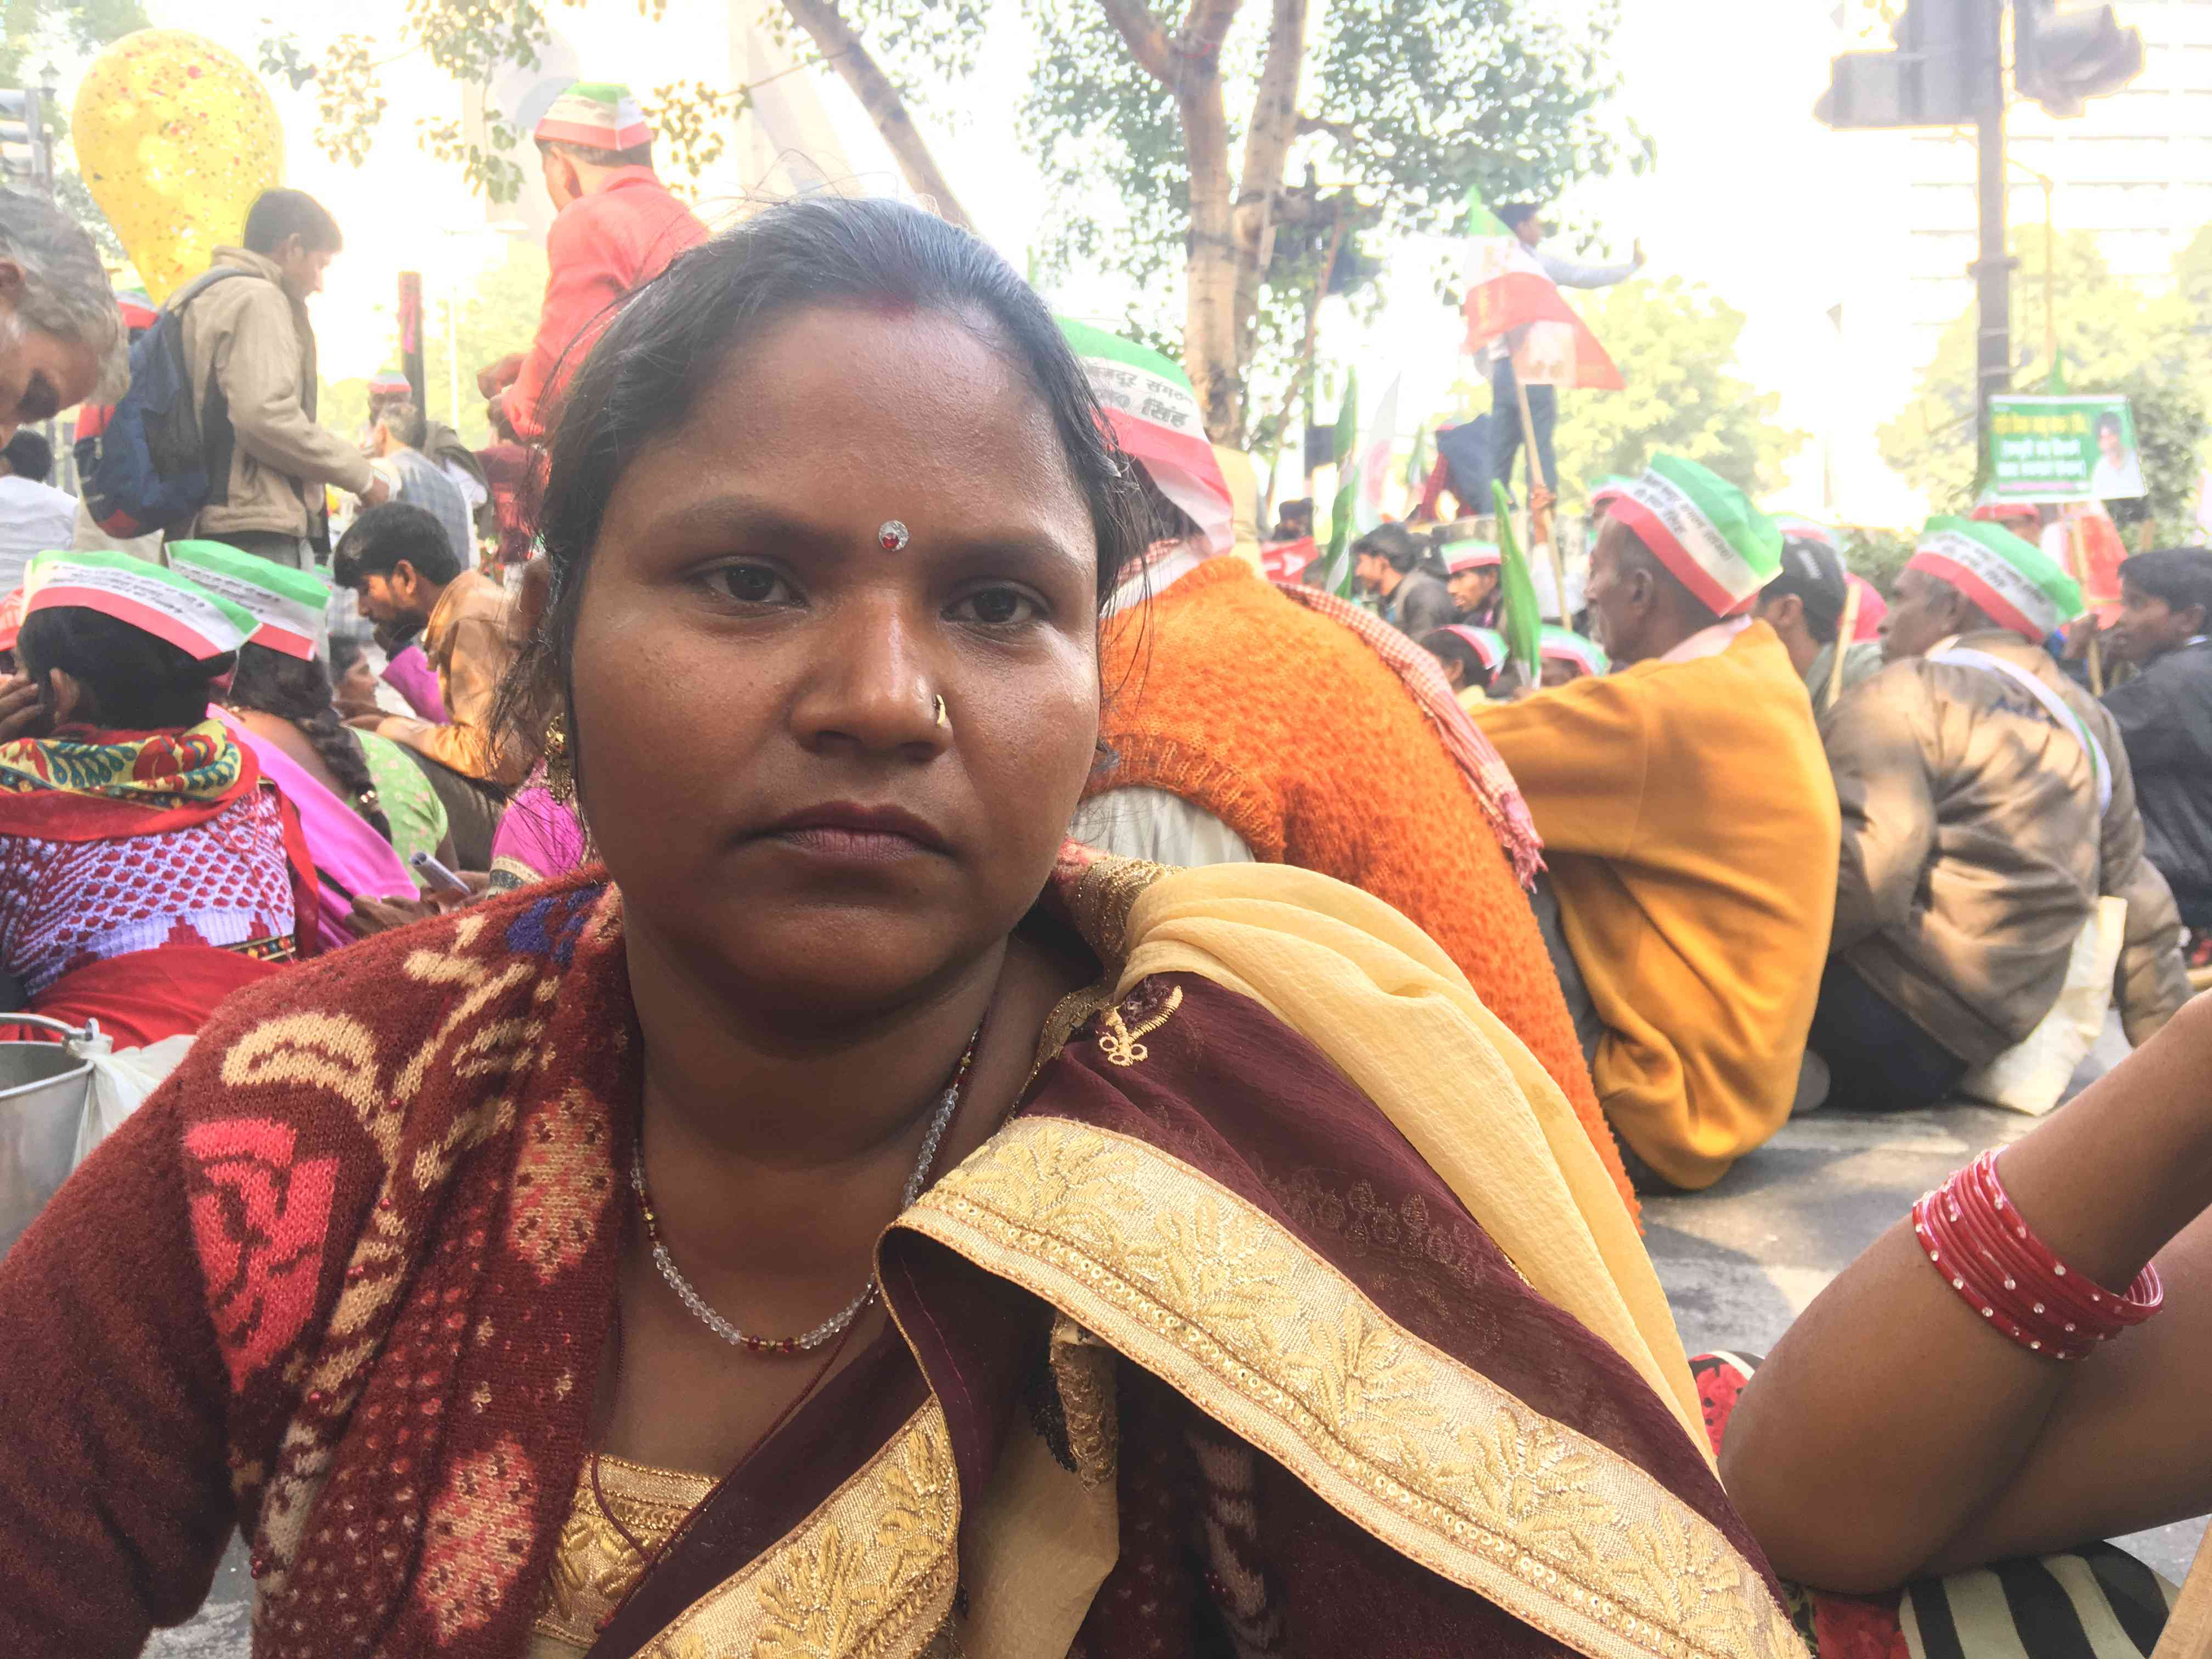 Sita Devi from Unnao attended the Kisan Mukti March to assert her right to equal employment opportunities.